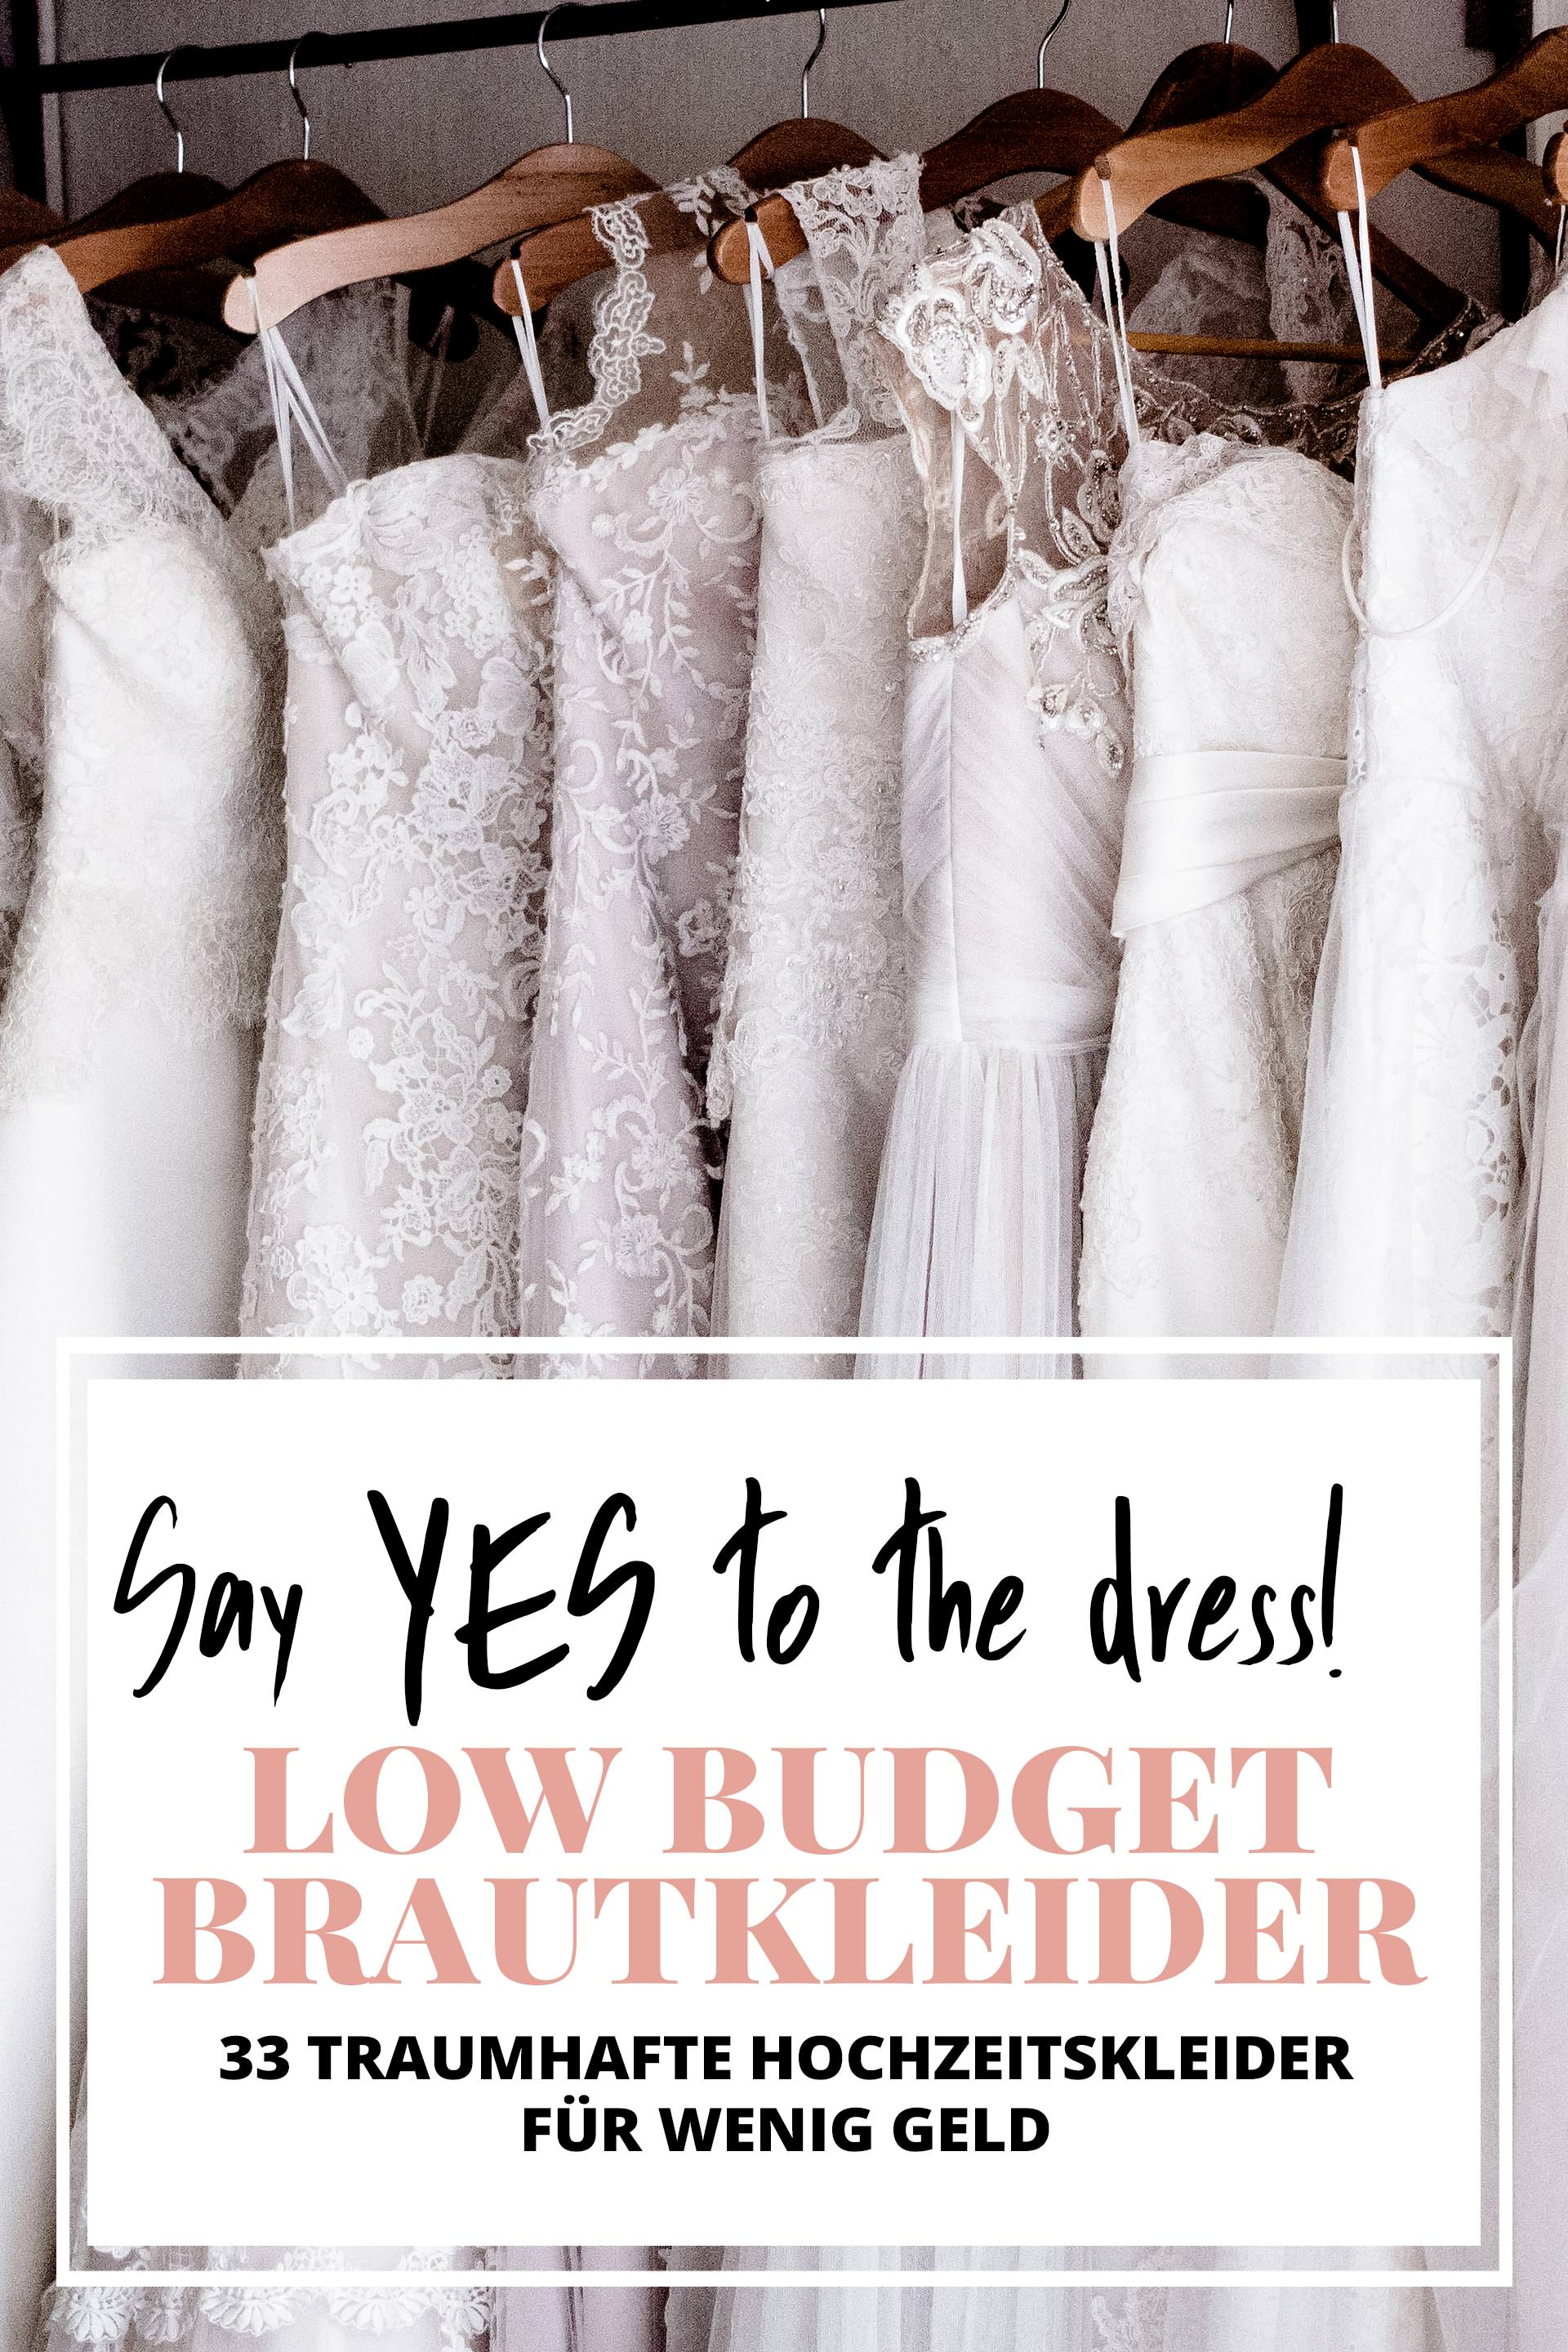 Say YES to the dress: Schöne Low Budget-Brautkleider unter 16